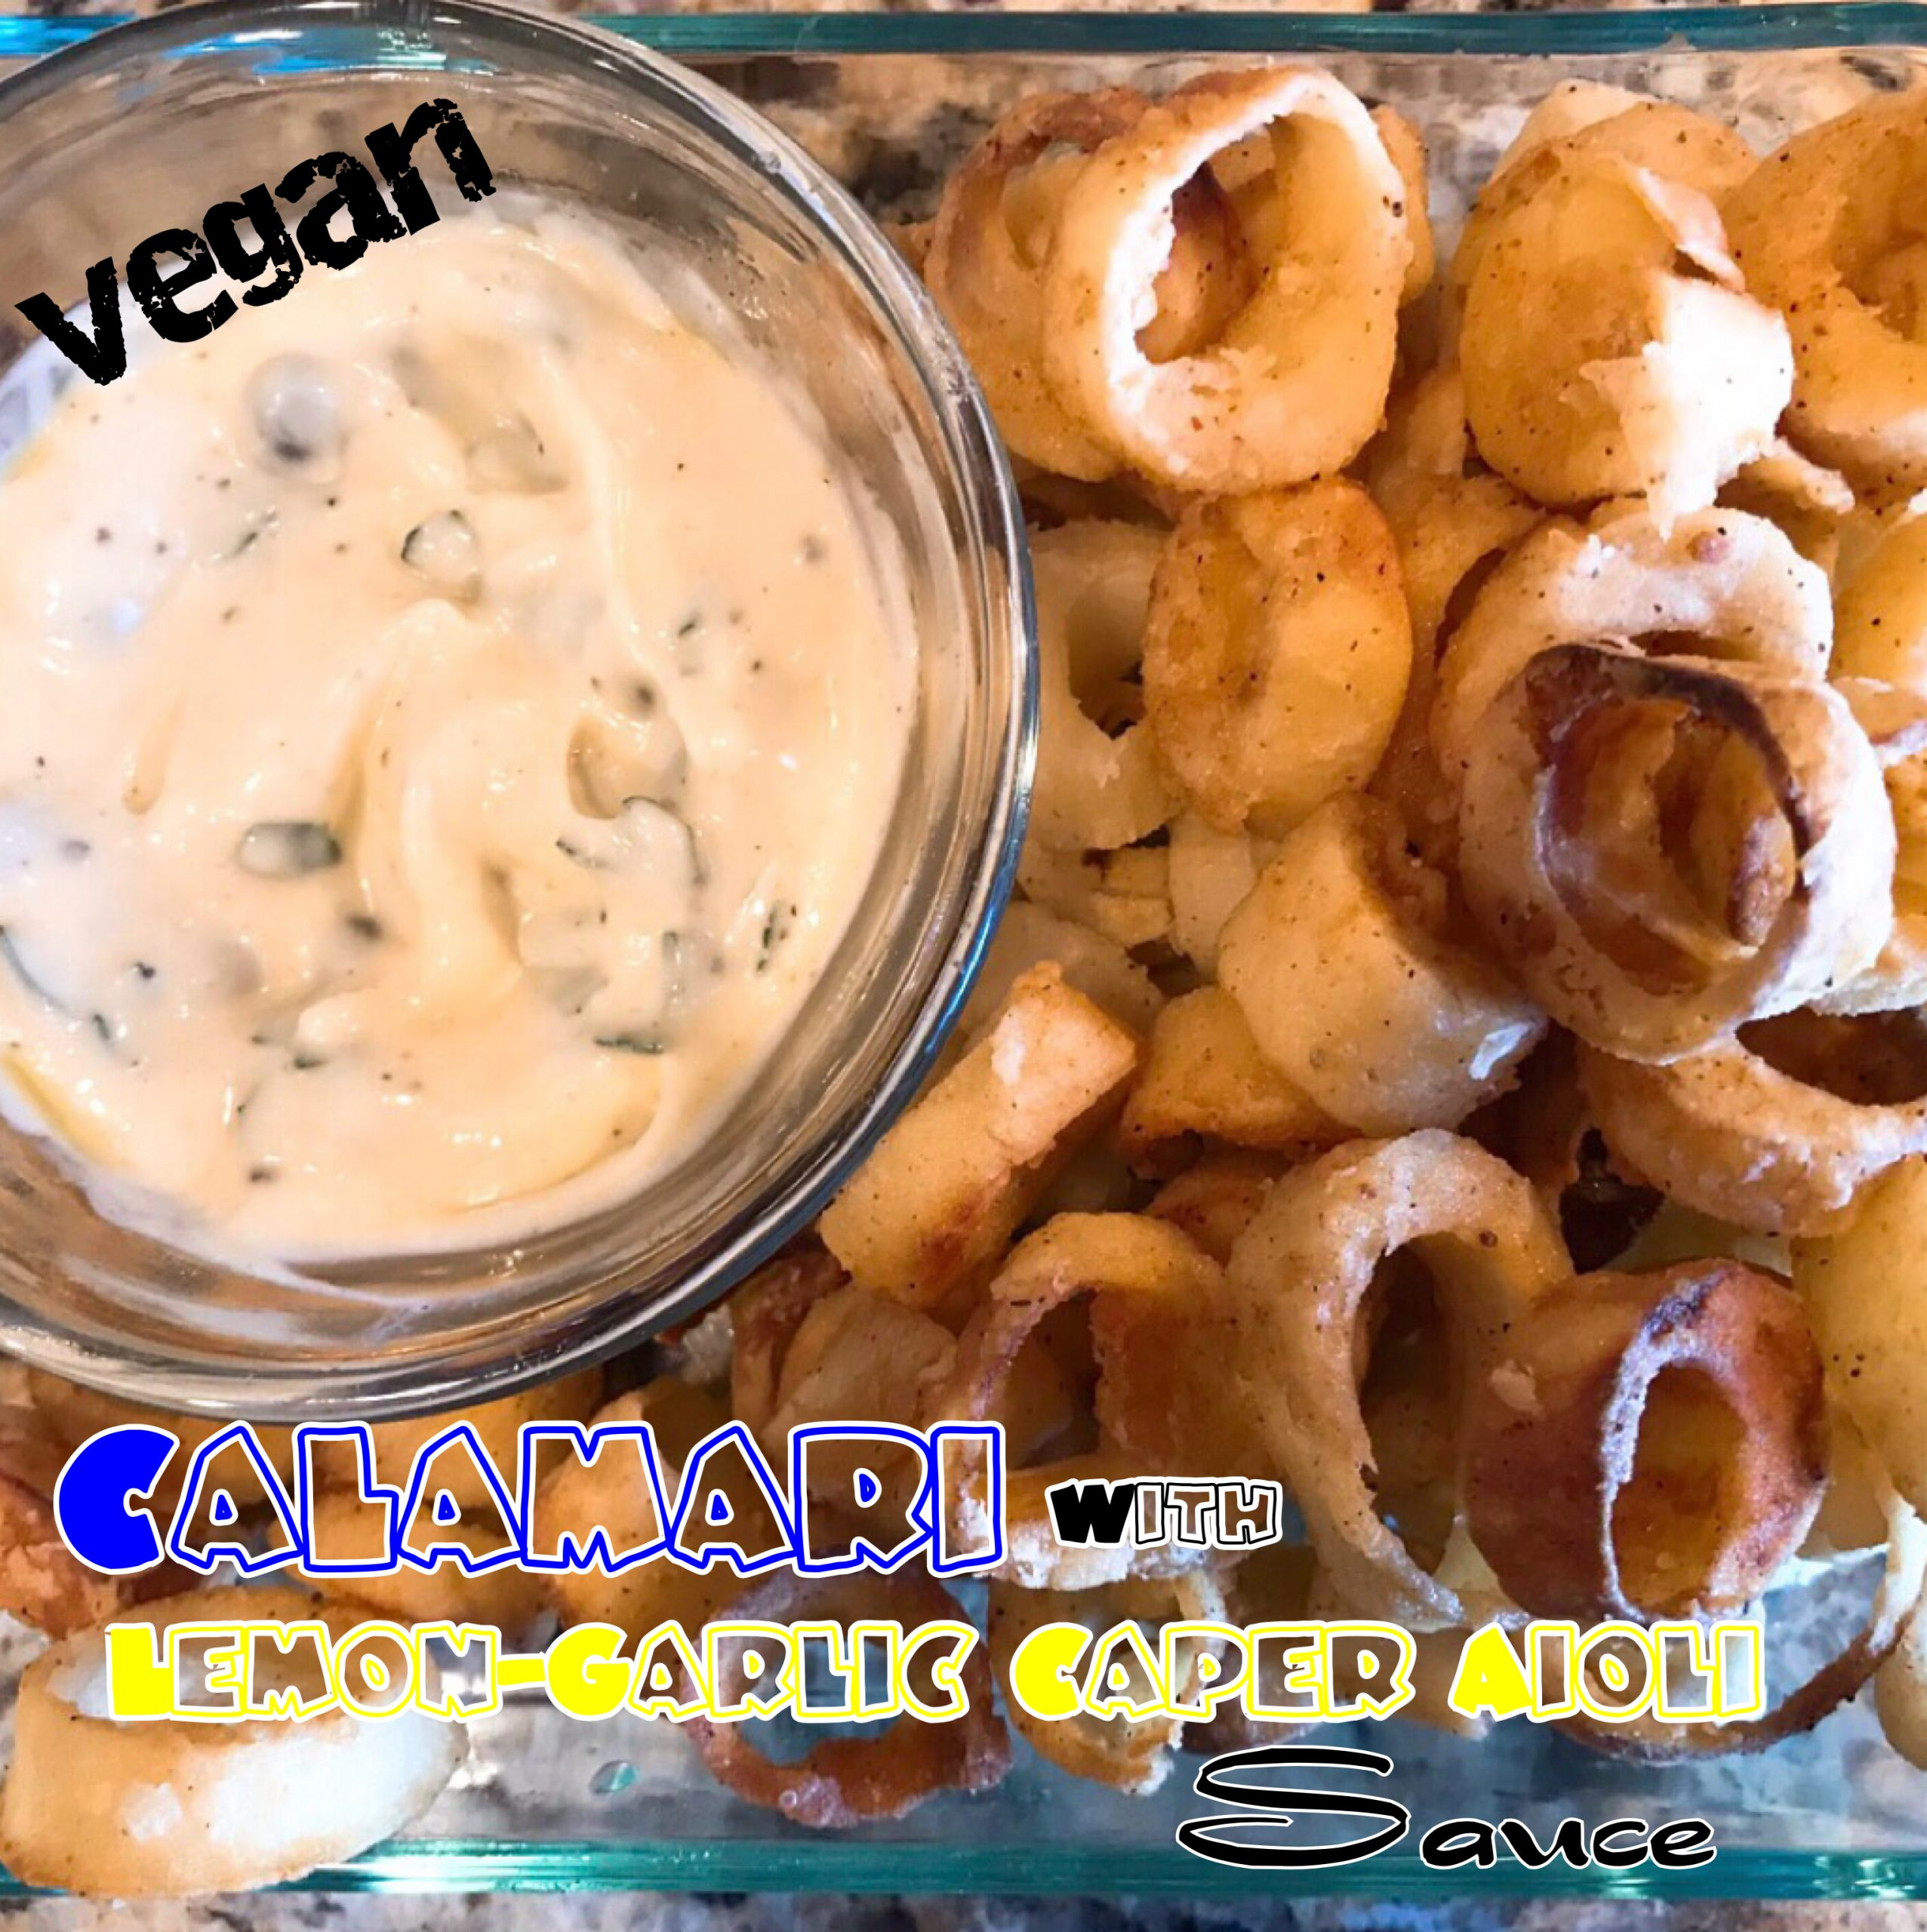 Vegan Calamari with Lemon-Garlic Caper Aioli Dip